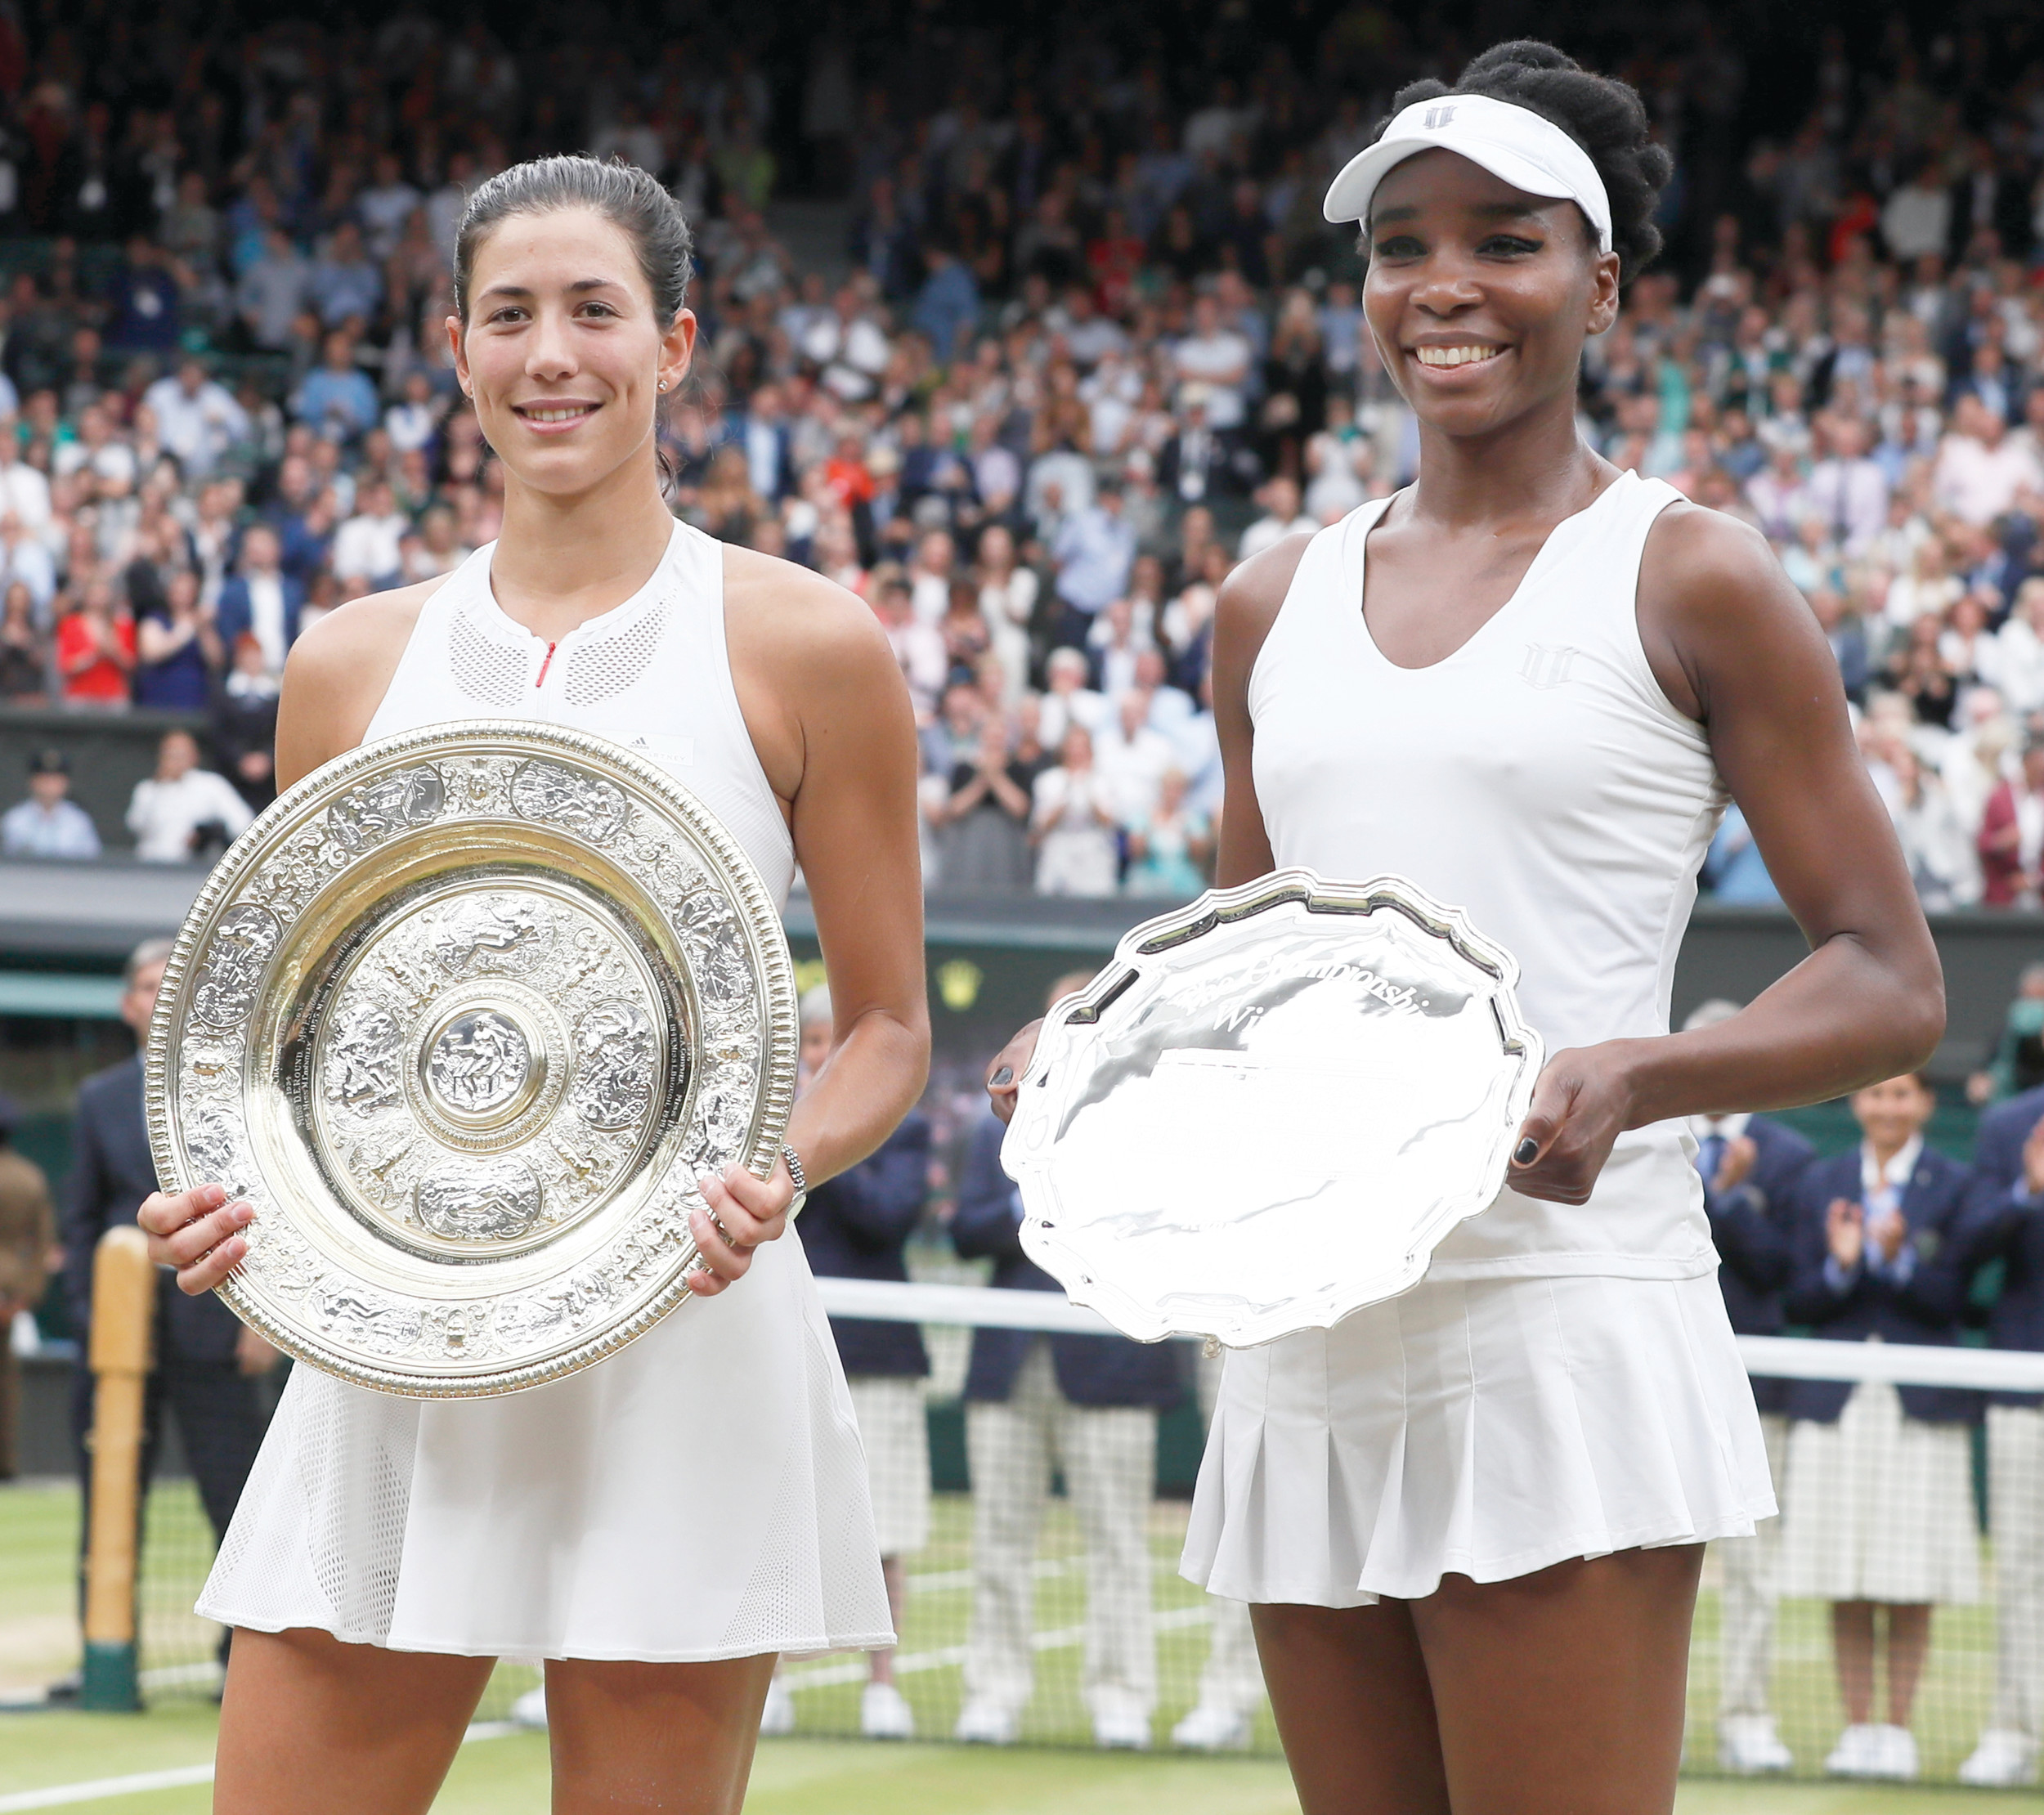 Garbine Muguruza, left, holds the winners trophy after defeating Venus Williams 7-5, 6-0 in the Wimbledon women's singles final on Saturday in London.